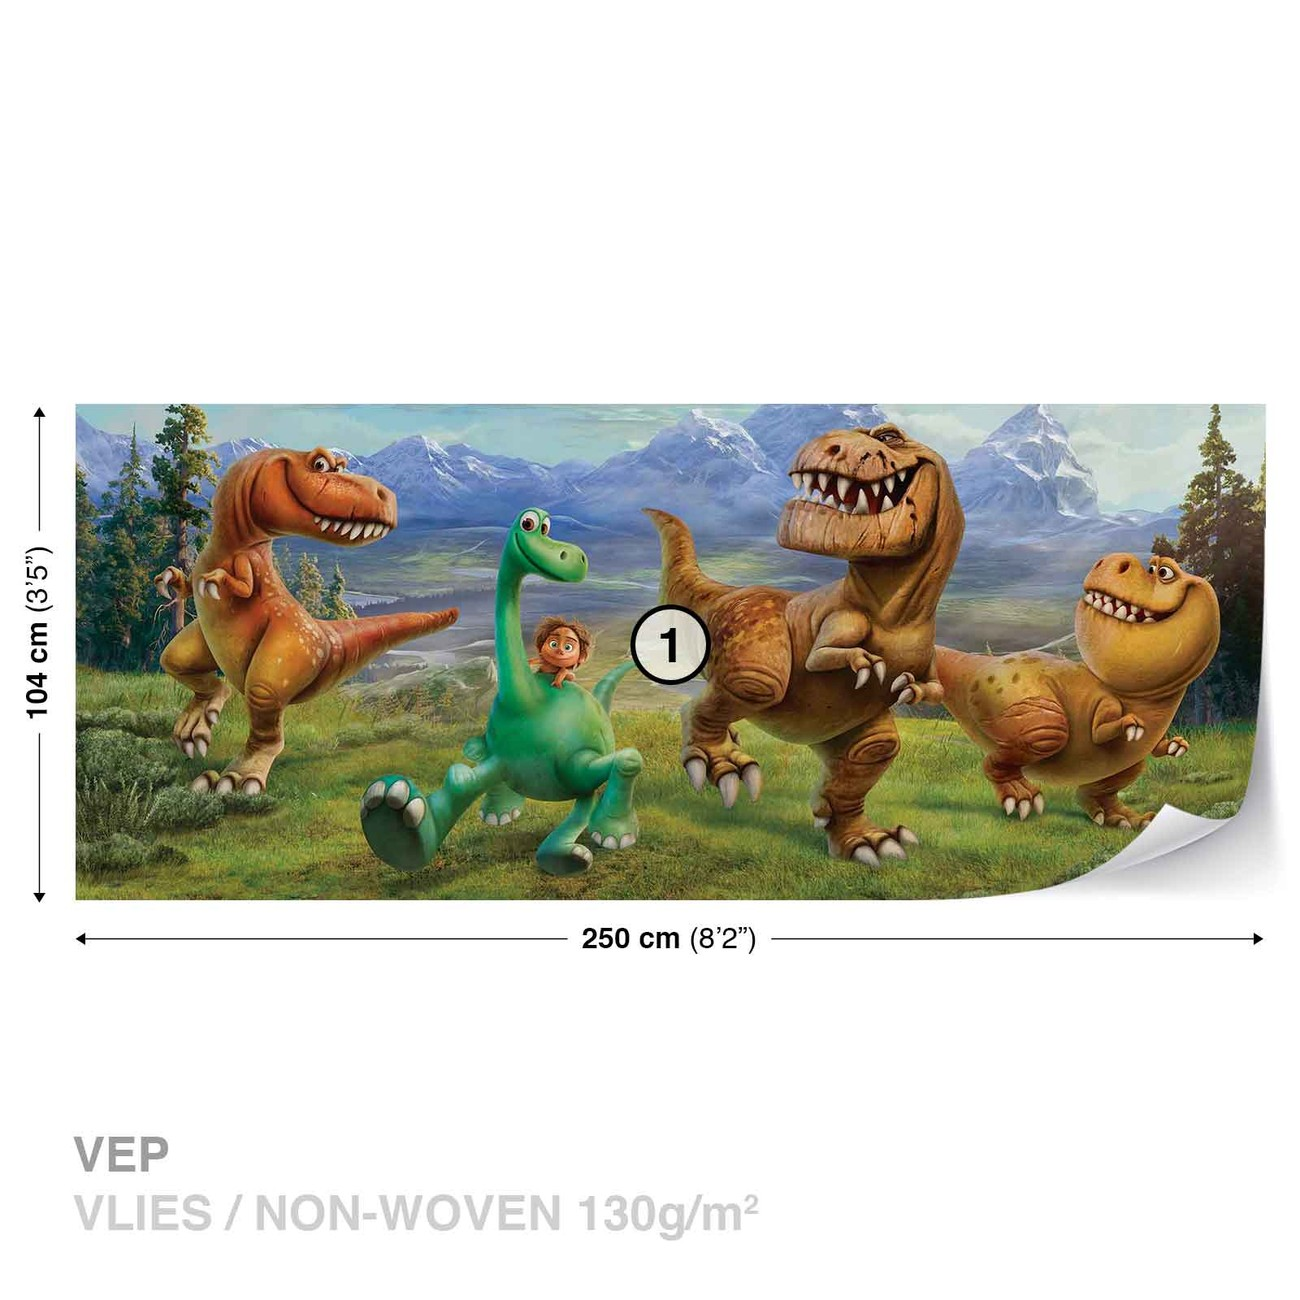 Disney good dinosaur wall paper mural buy at europosters for Dinosaur wall mural uk